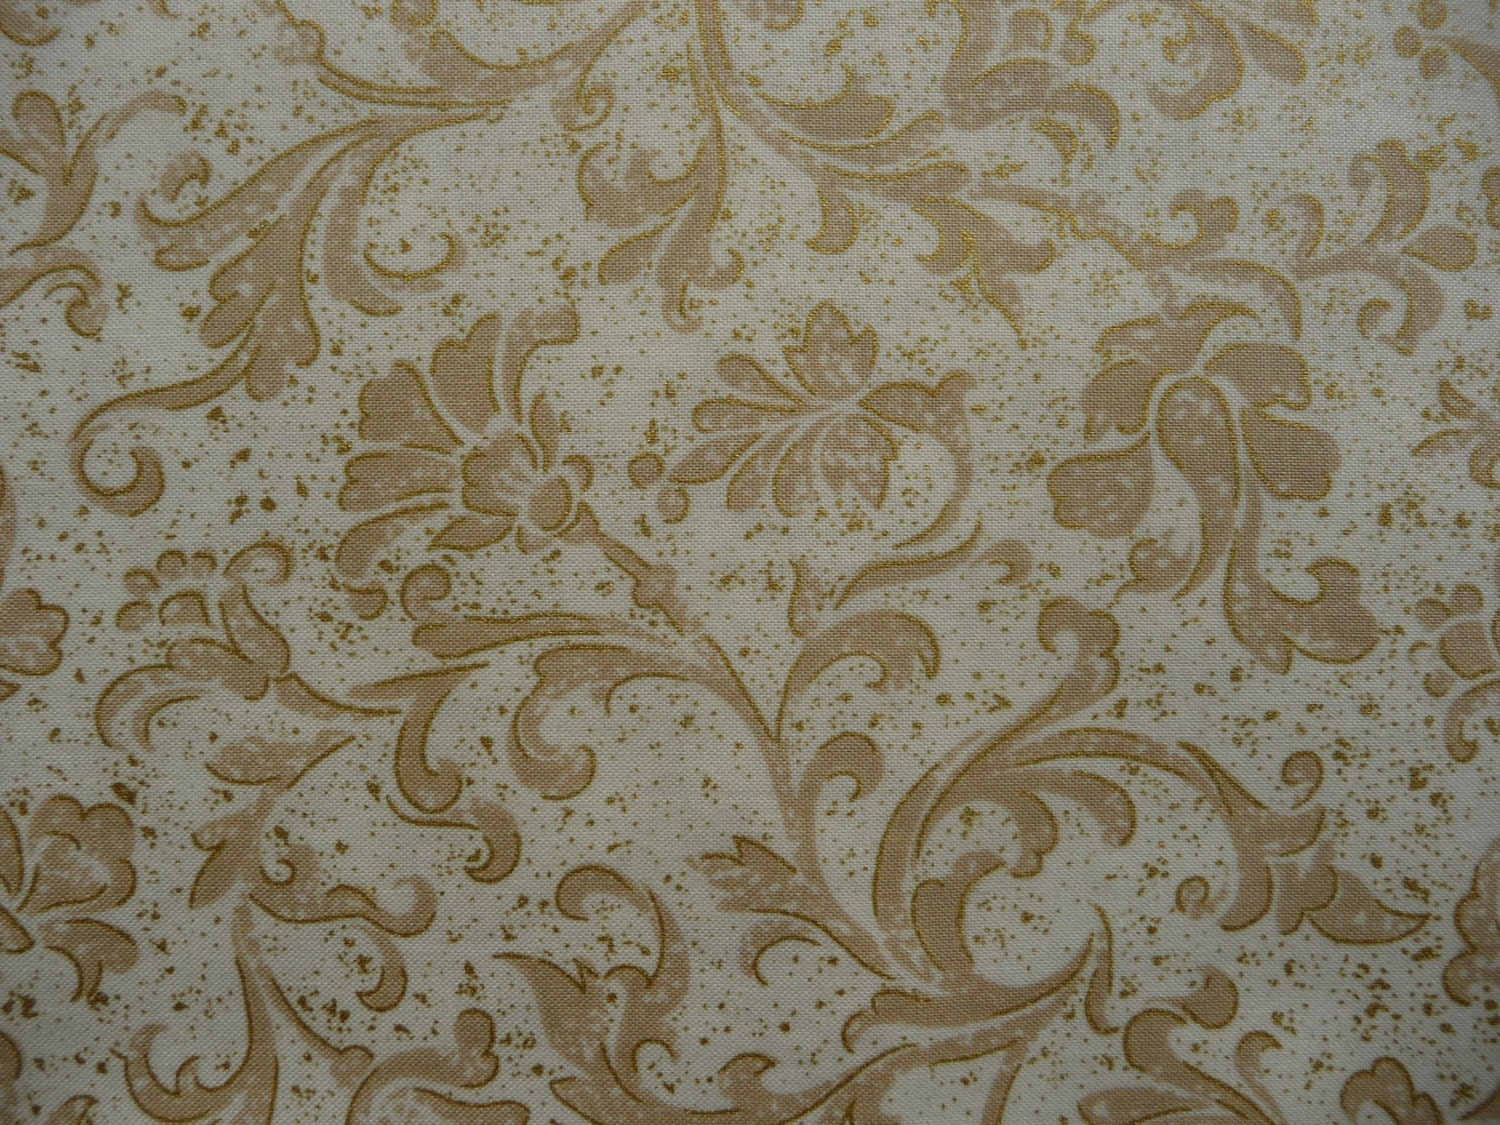 Metallic Gold Cotton Fabric F880 Baroque Christmas Fabric | Etsy